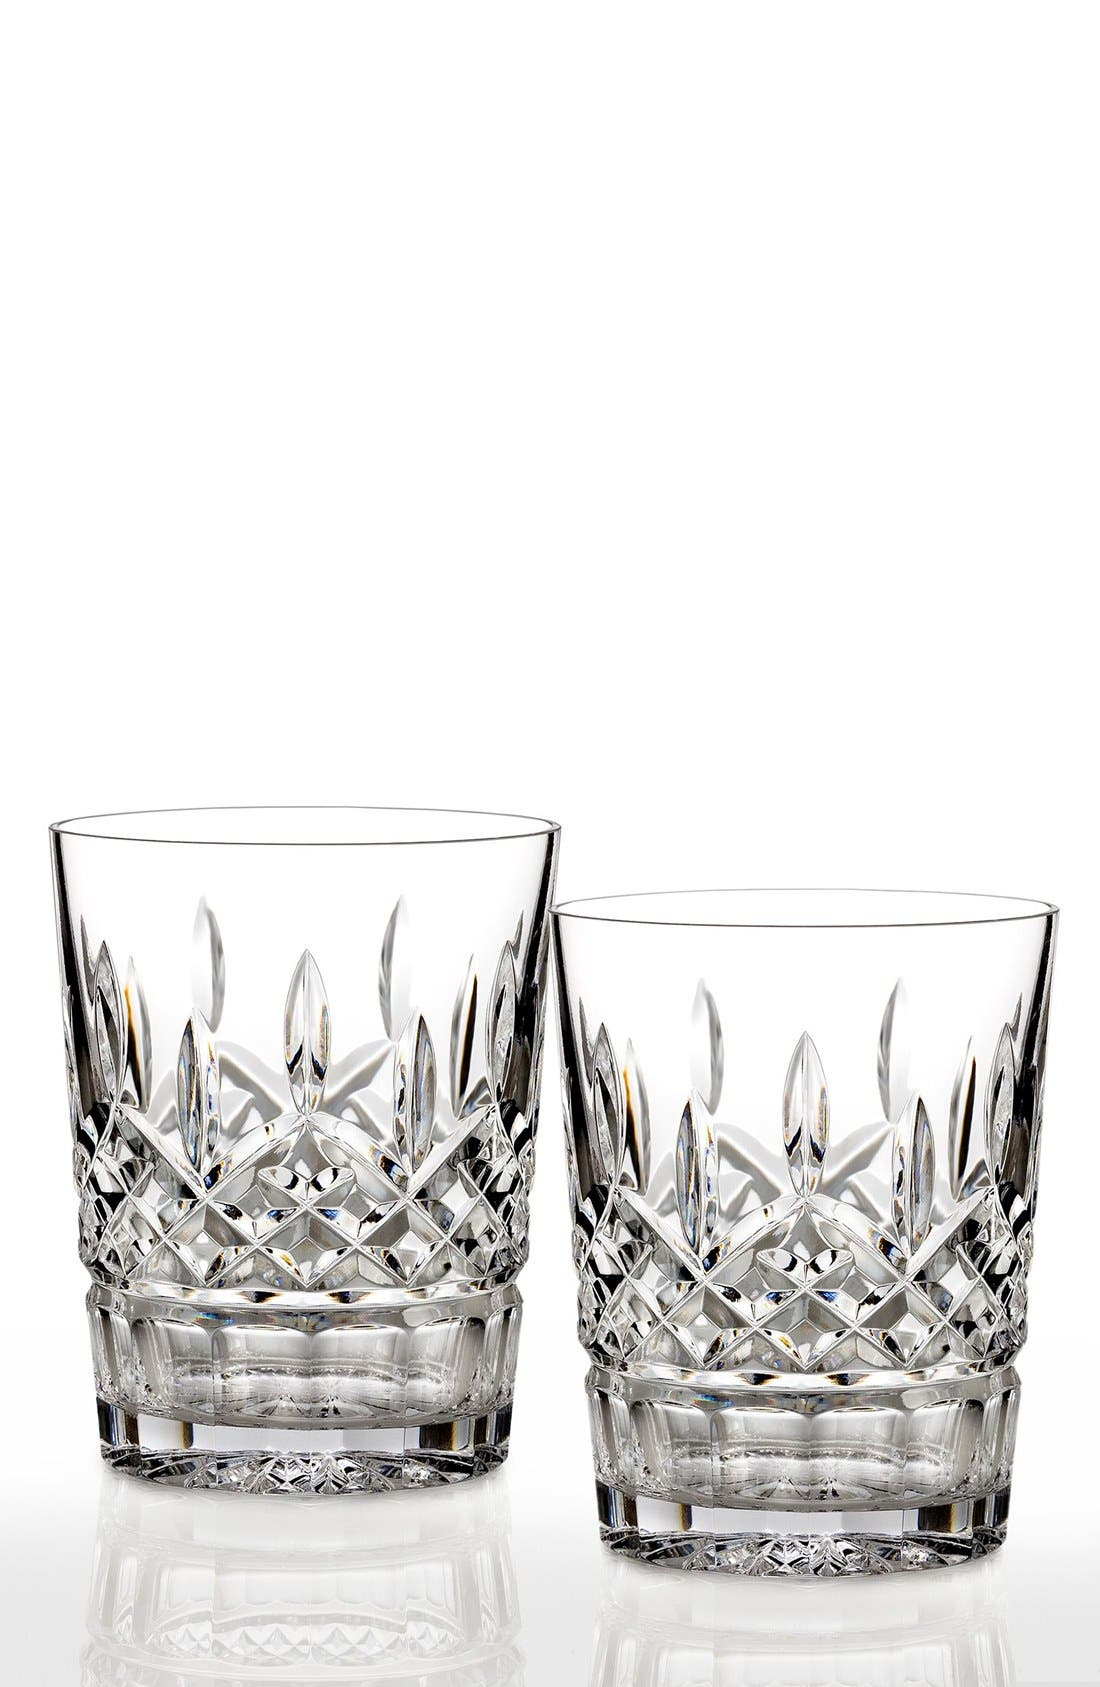 Main Image - Waterford 'Lismore' Lead Crystal Double Old Fashioned Glasses (Set of 2)